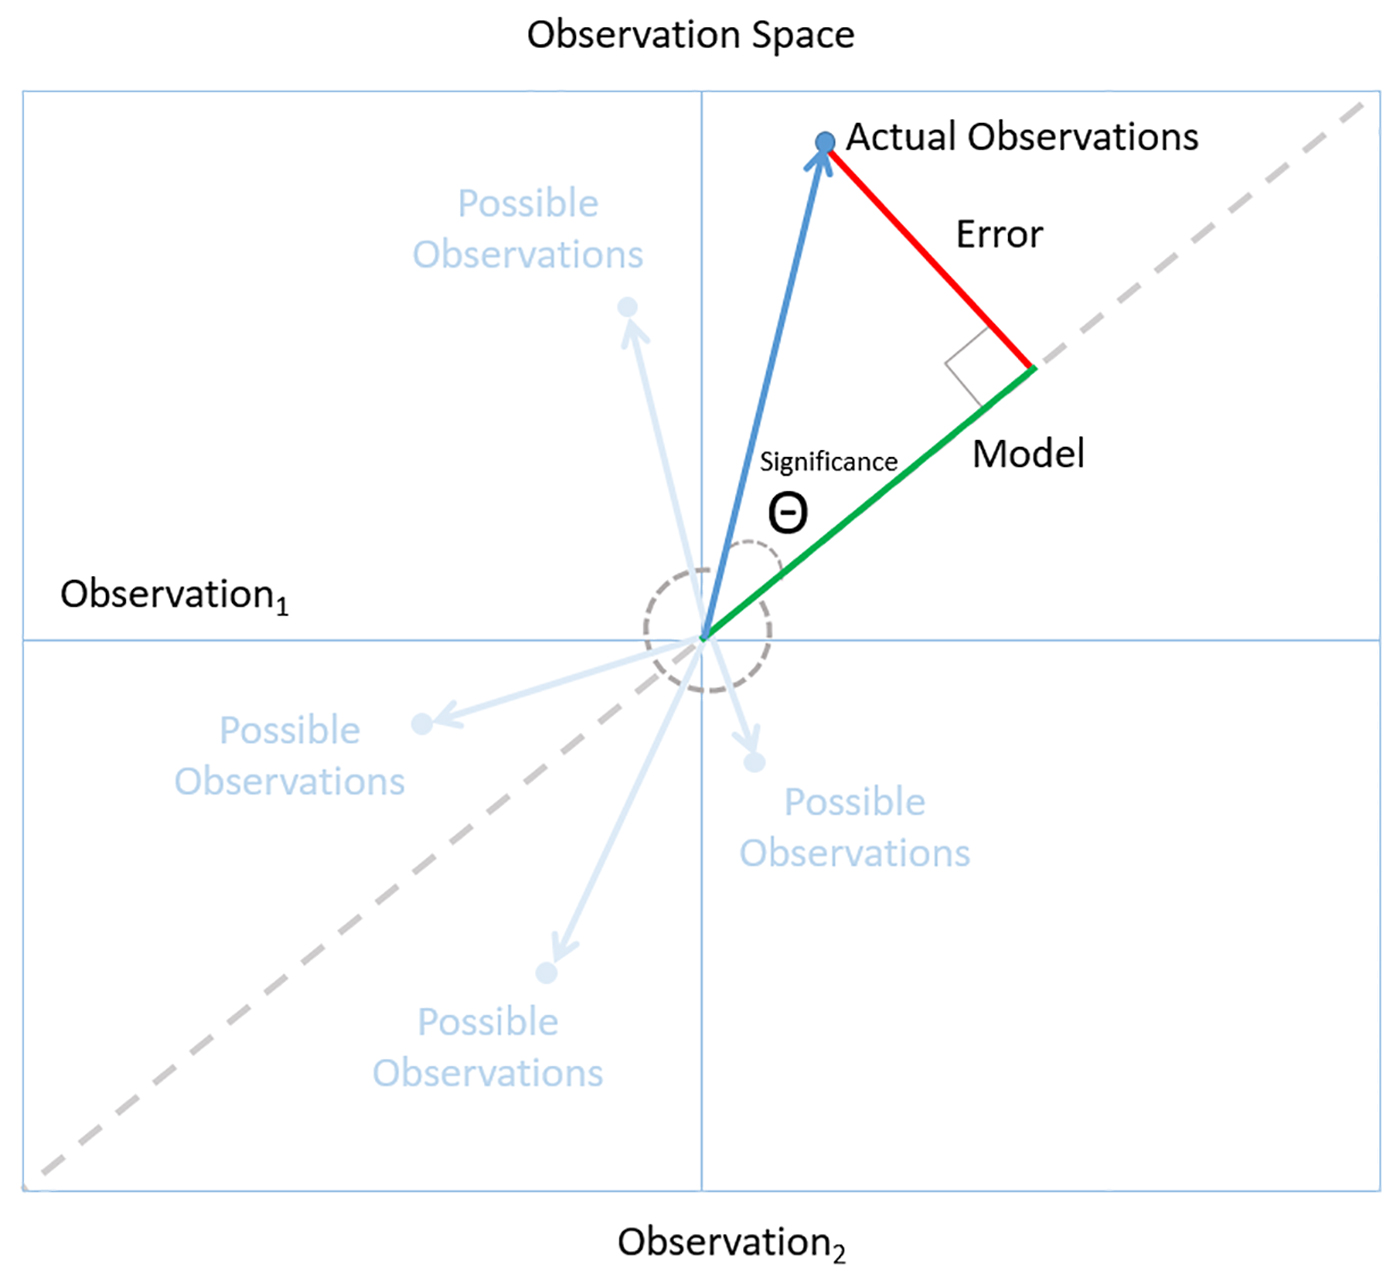 A small angle indicates a significant model